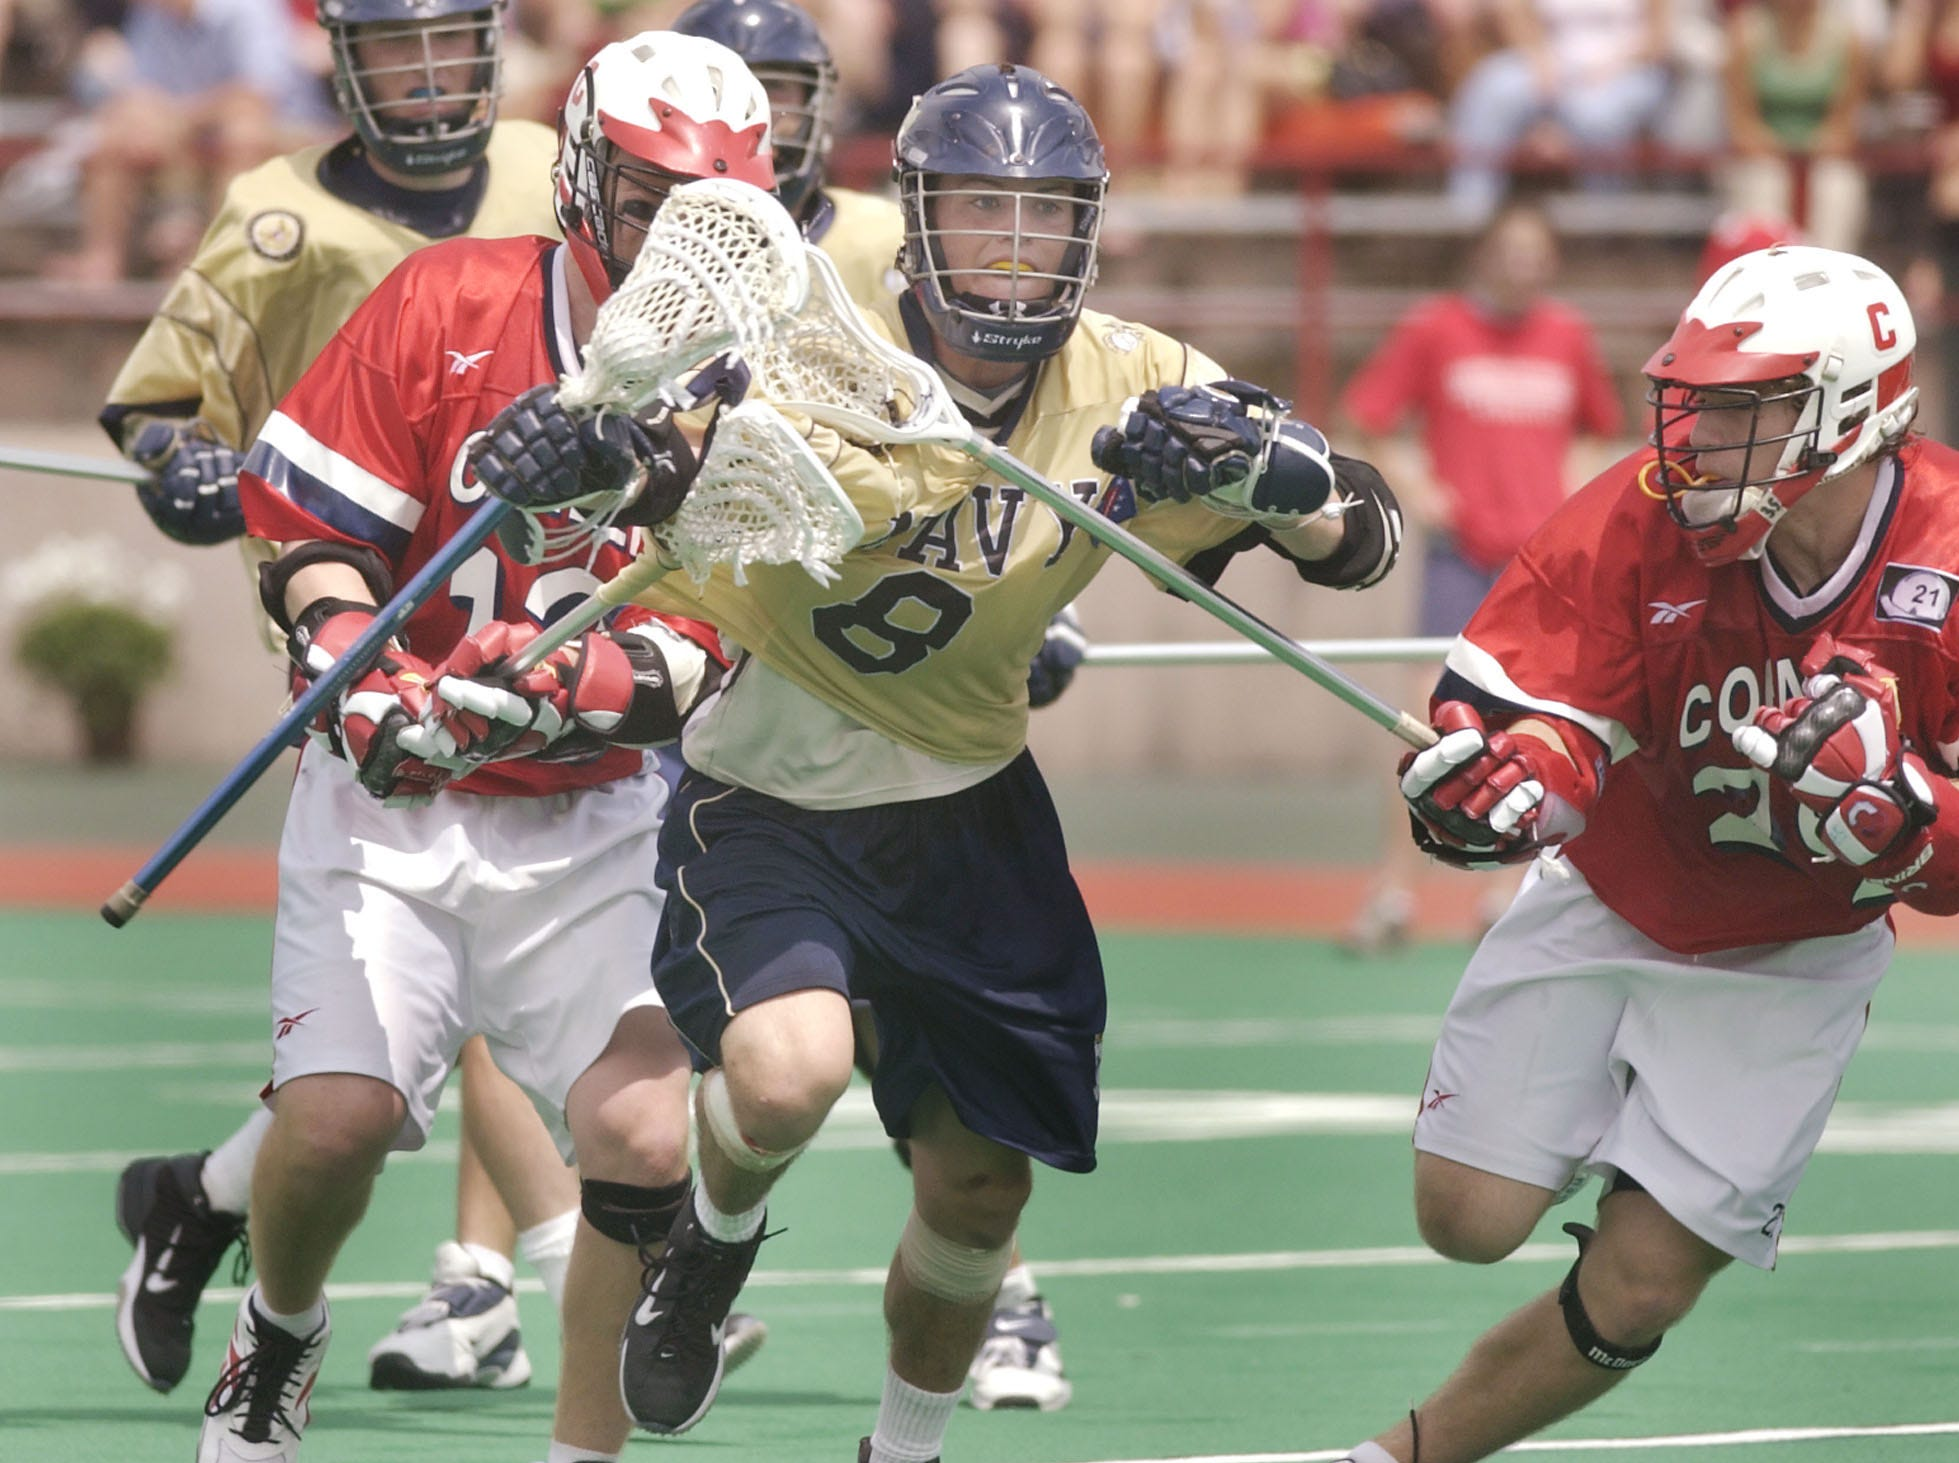 Navy's Steve Looney (8) runs between Cornell's Cameron Marchant, right, and Kevin Nee during the fourth quarter of their NCAA Division I lacrosse quarterfinal game in Ithaca, N.Y. Sunday, May 23, 2004. Navy won 6-5.